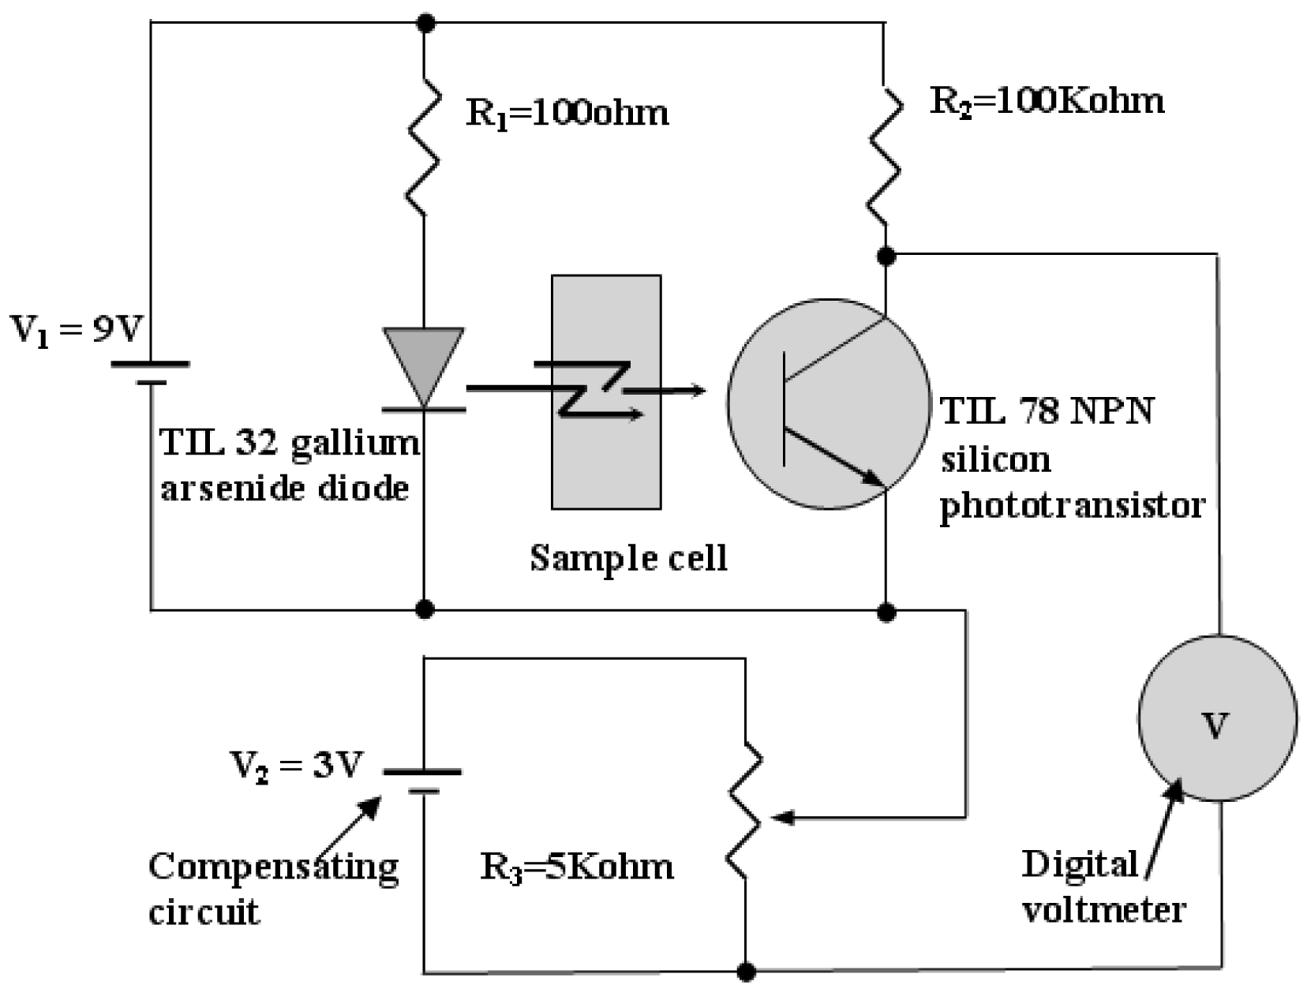 Sensors Free Full Text Turbidimeter Design And Analysis A Storm Detector Circuit 09 08311f4